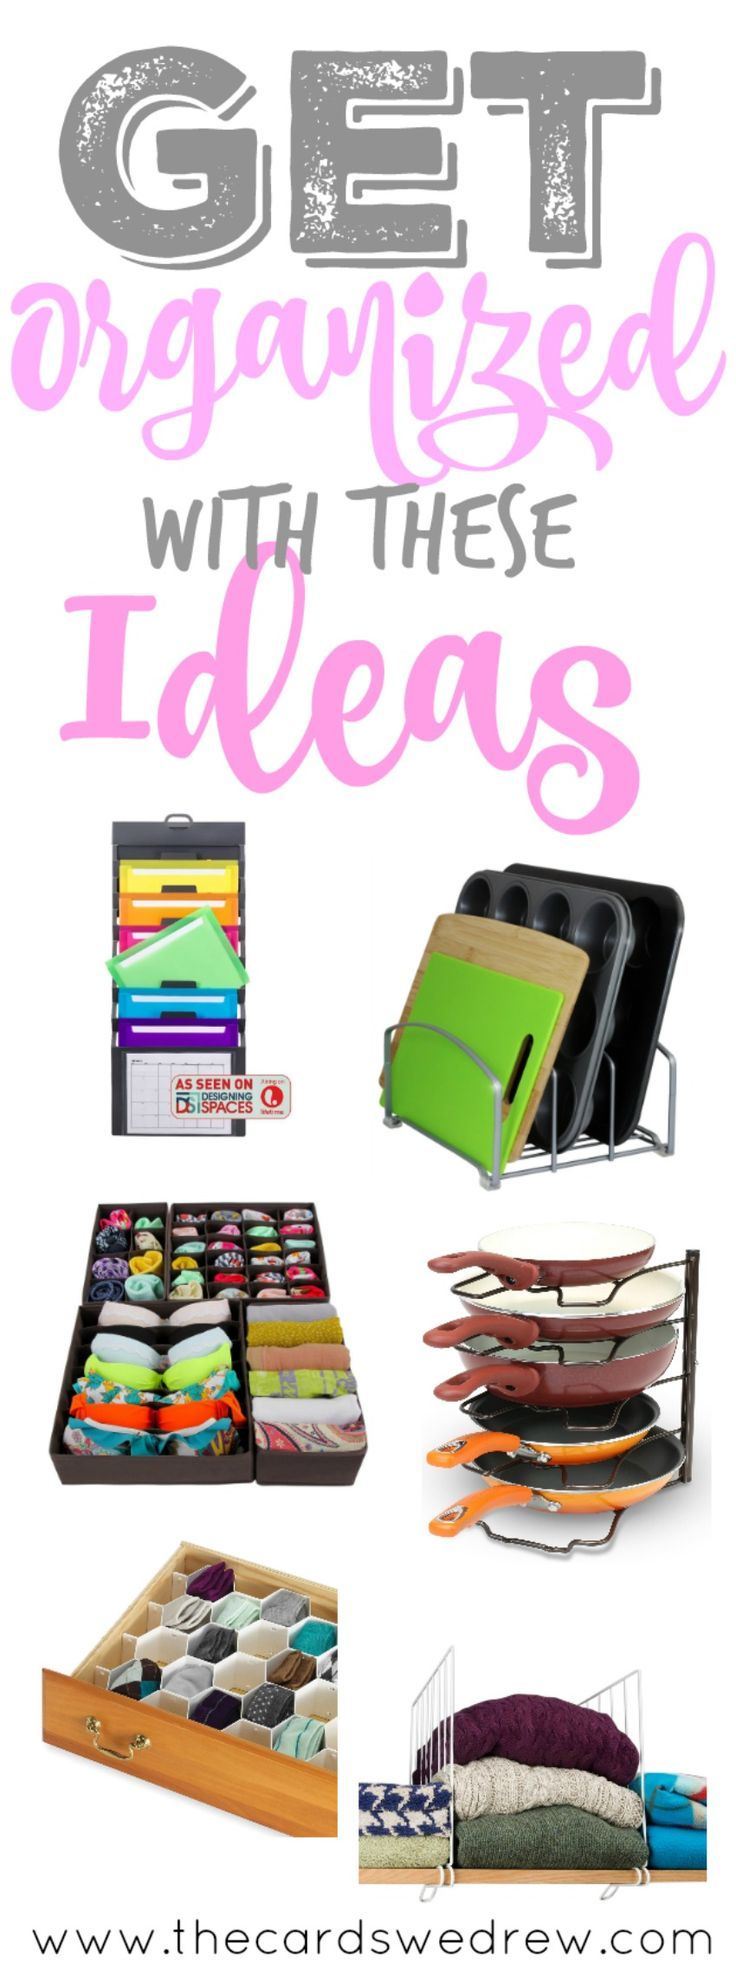 Learn how to get organized in the new year with this list of things to work on and products that can help you along the way!